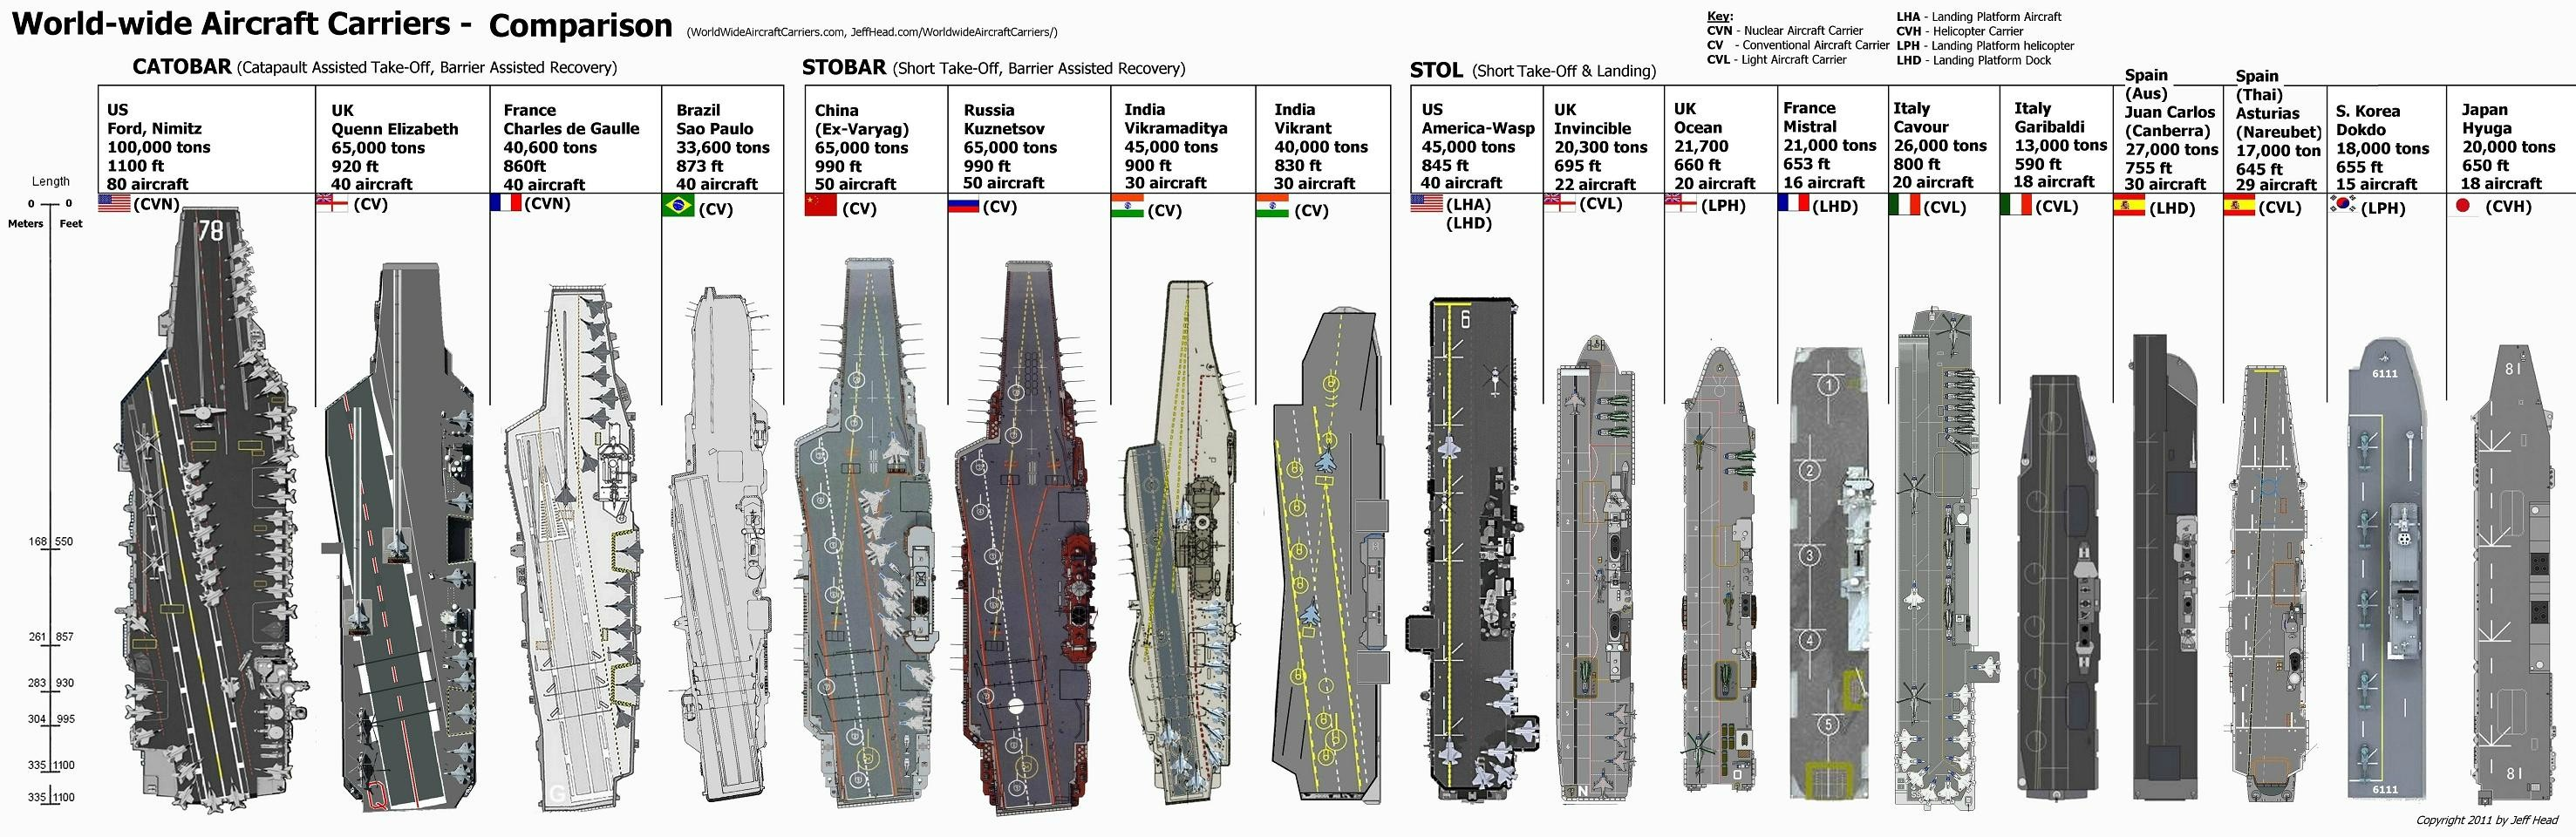 Uss Nimitz Size Comparison Scale rendering of the...